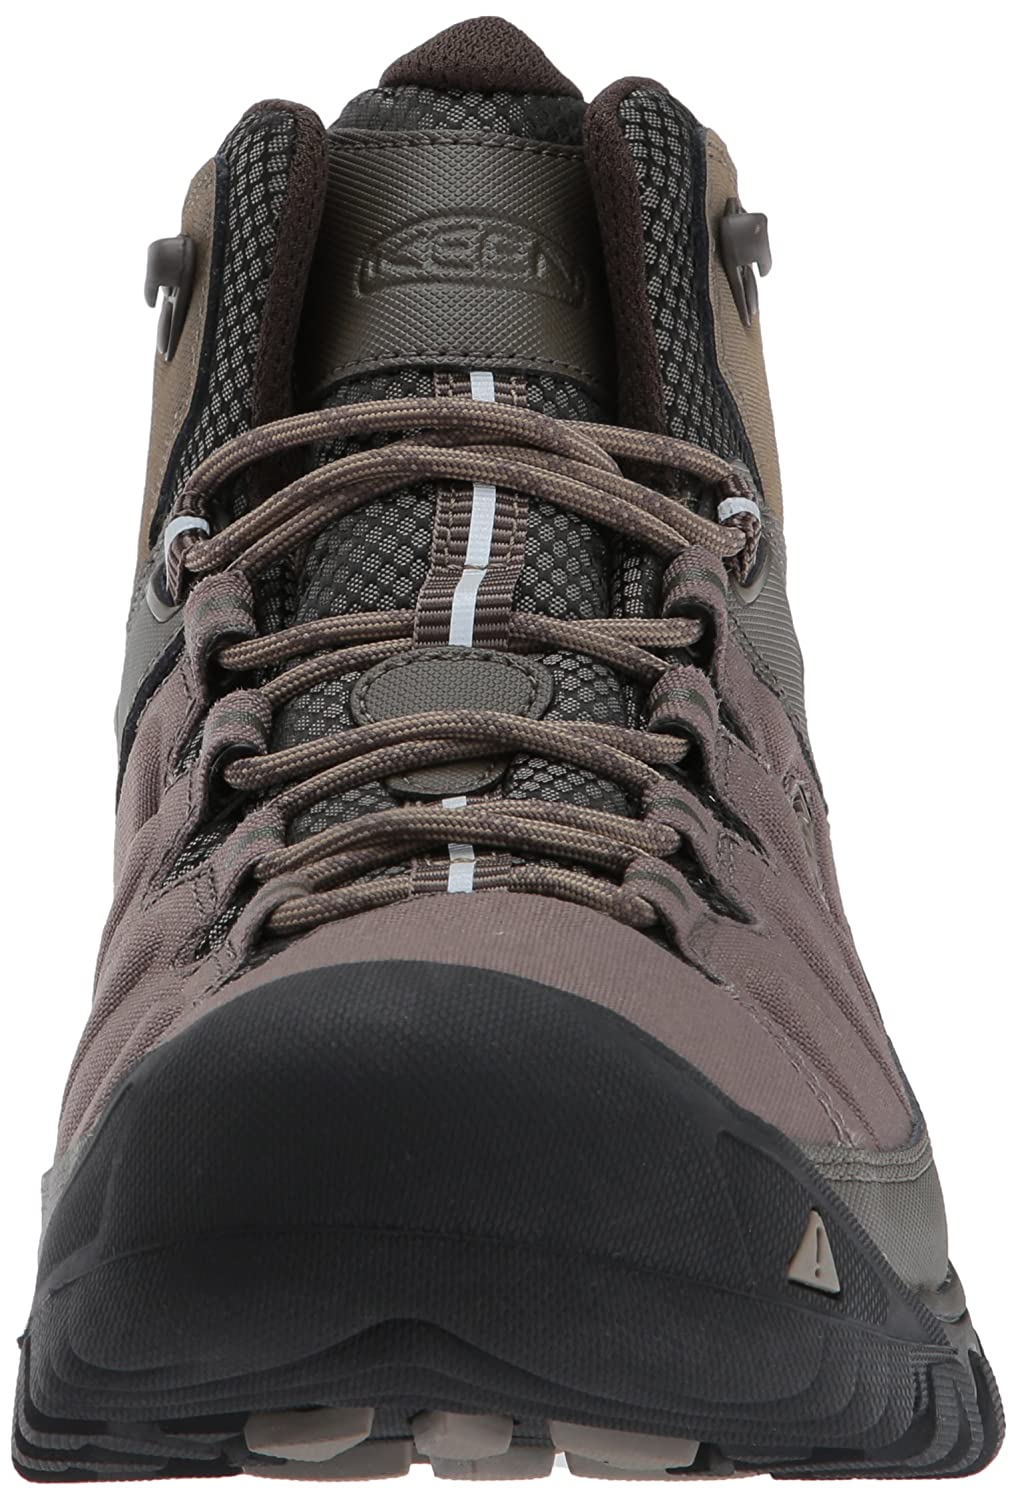 Amazon.com | KEEN Mens Targhee exp mid wp-m Hiking Boot, Bungee Cord/Brindle, 10 M US | Hiking Boots